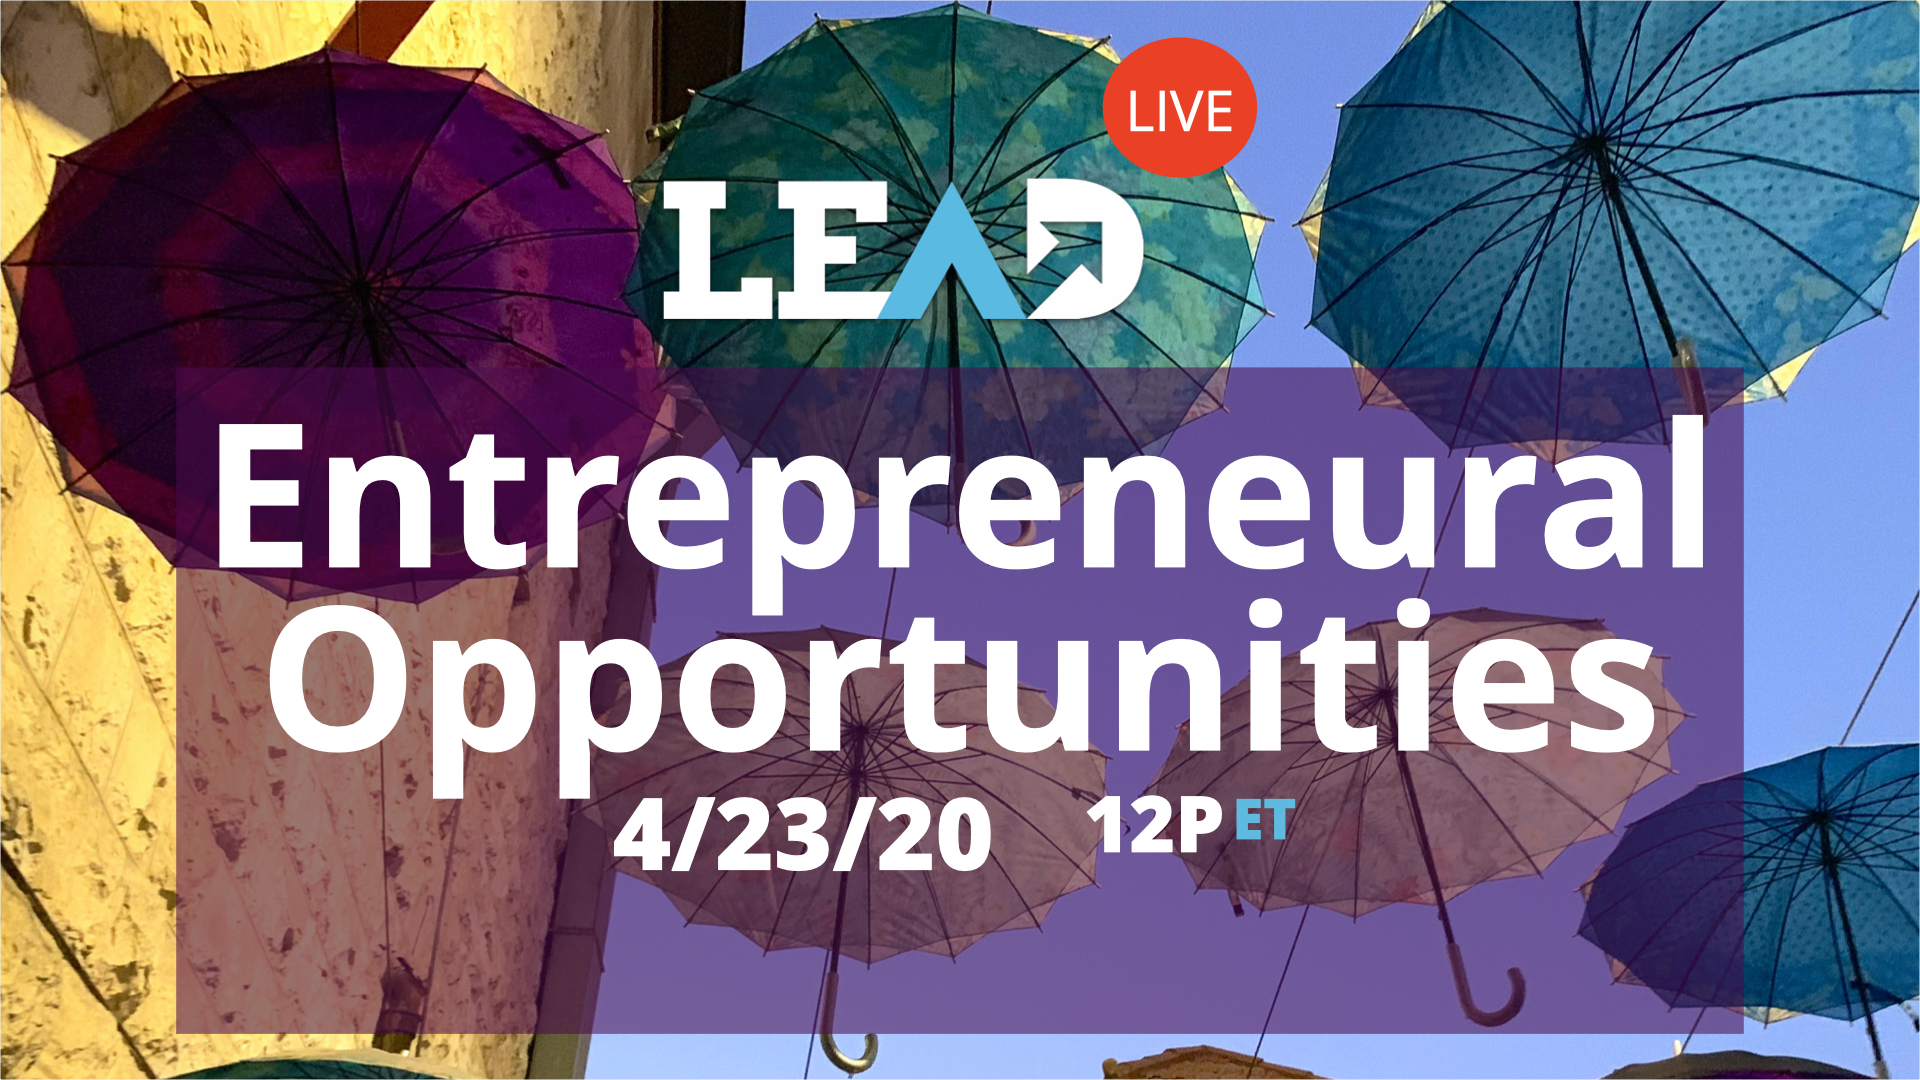 Entreprenueral Opportunities In Spite of COVID-19